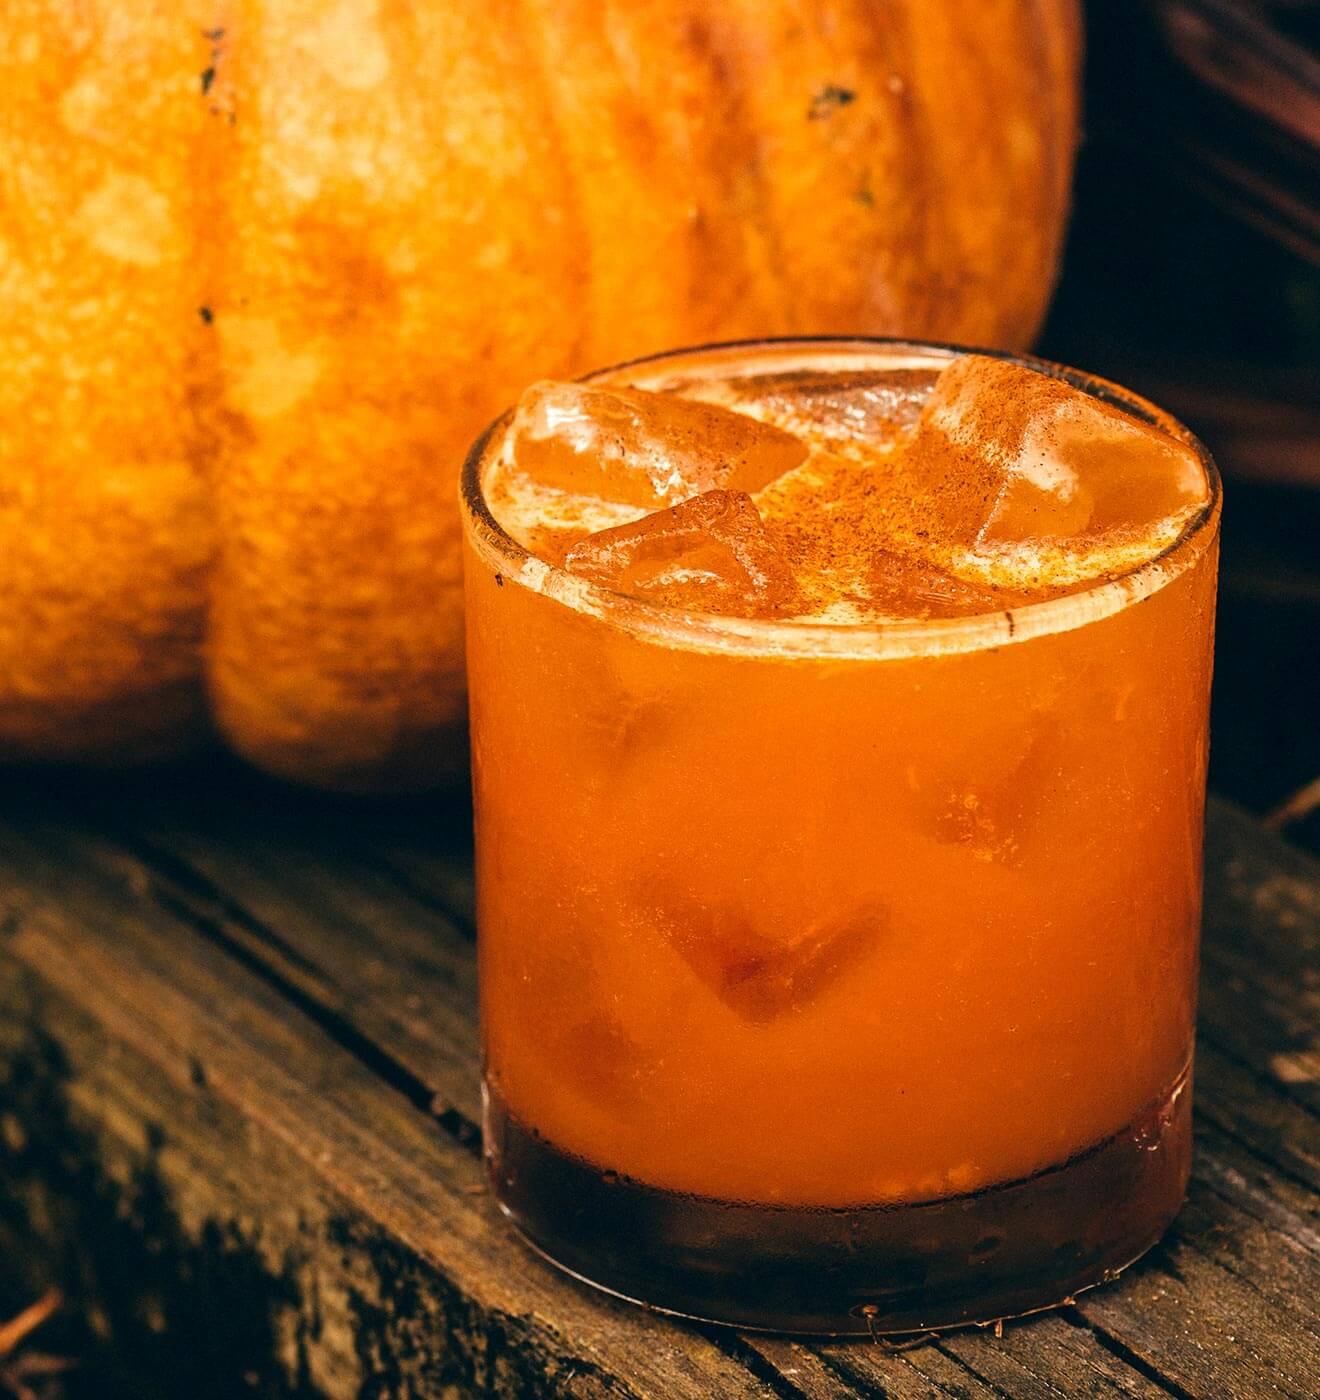 Smashing Pumpkins, cocktail with pumpkin on table